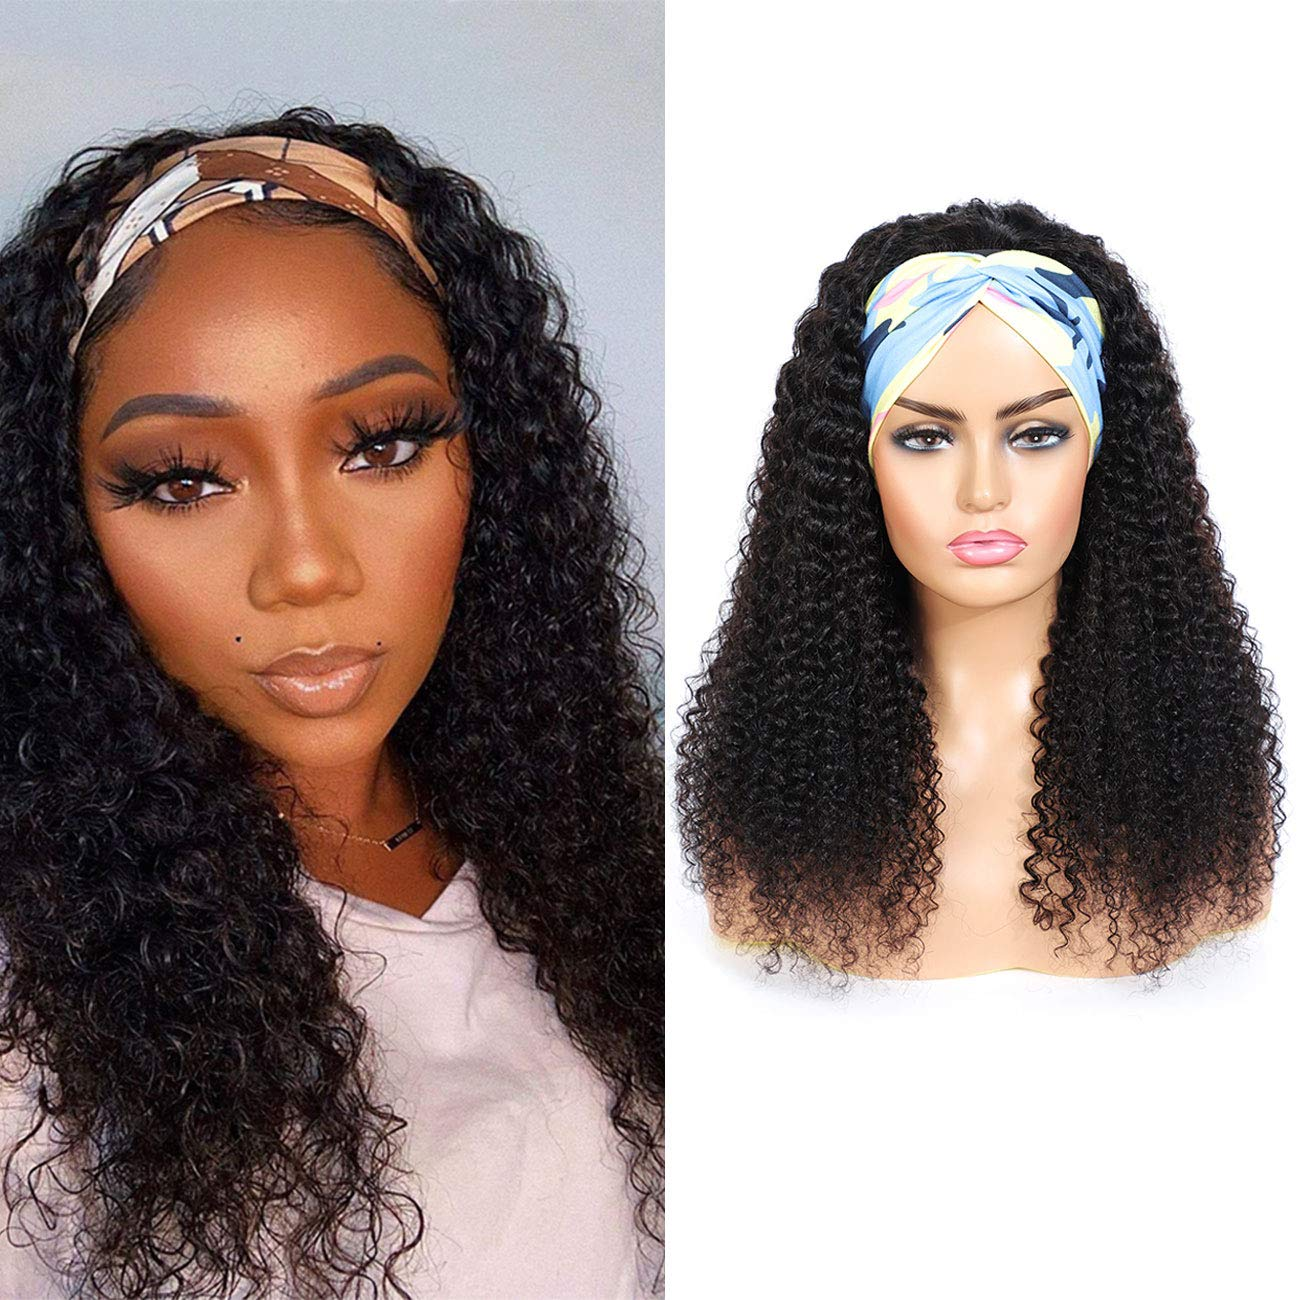 Headband specialty shop Wig Human Hair Chicago Mall Glueless None Wigs Lace Front for Black